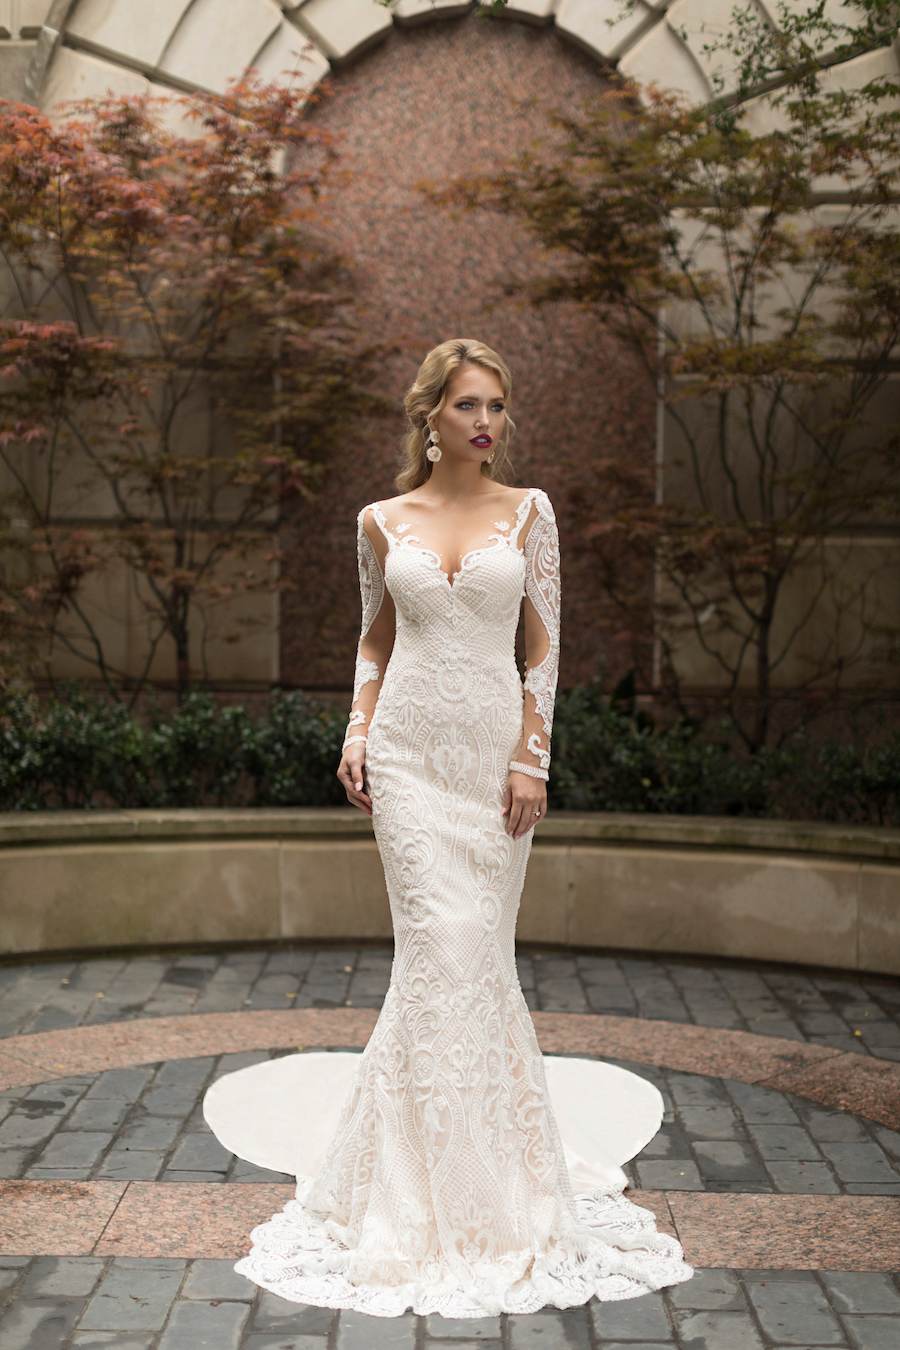 Naama and Anat Haute Couture, Wedding Dress Trends, 2018 Wedding Dress Trends, Naama and Anat Bridal, Couture Wedding Dress, Luxury Wedding Gown, Meregnue Gown, Dancing Up The Aisle